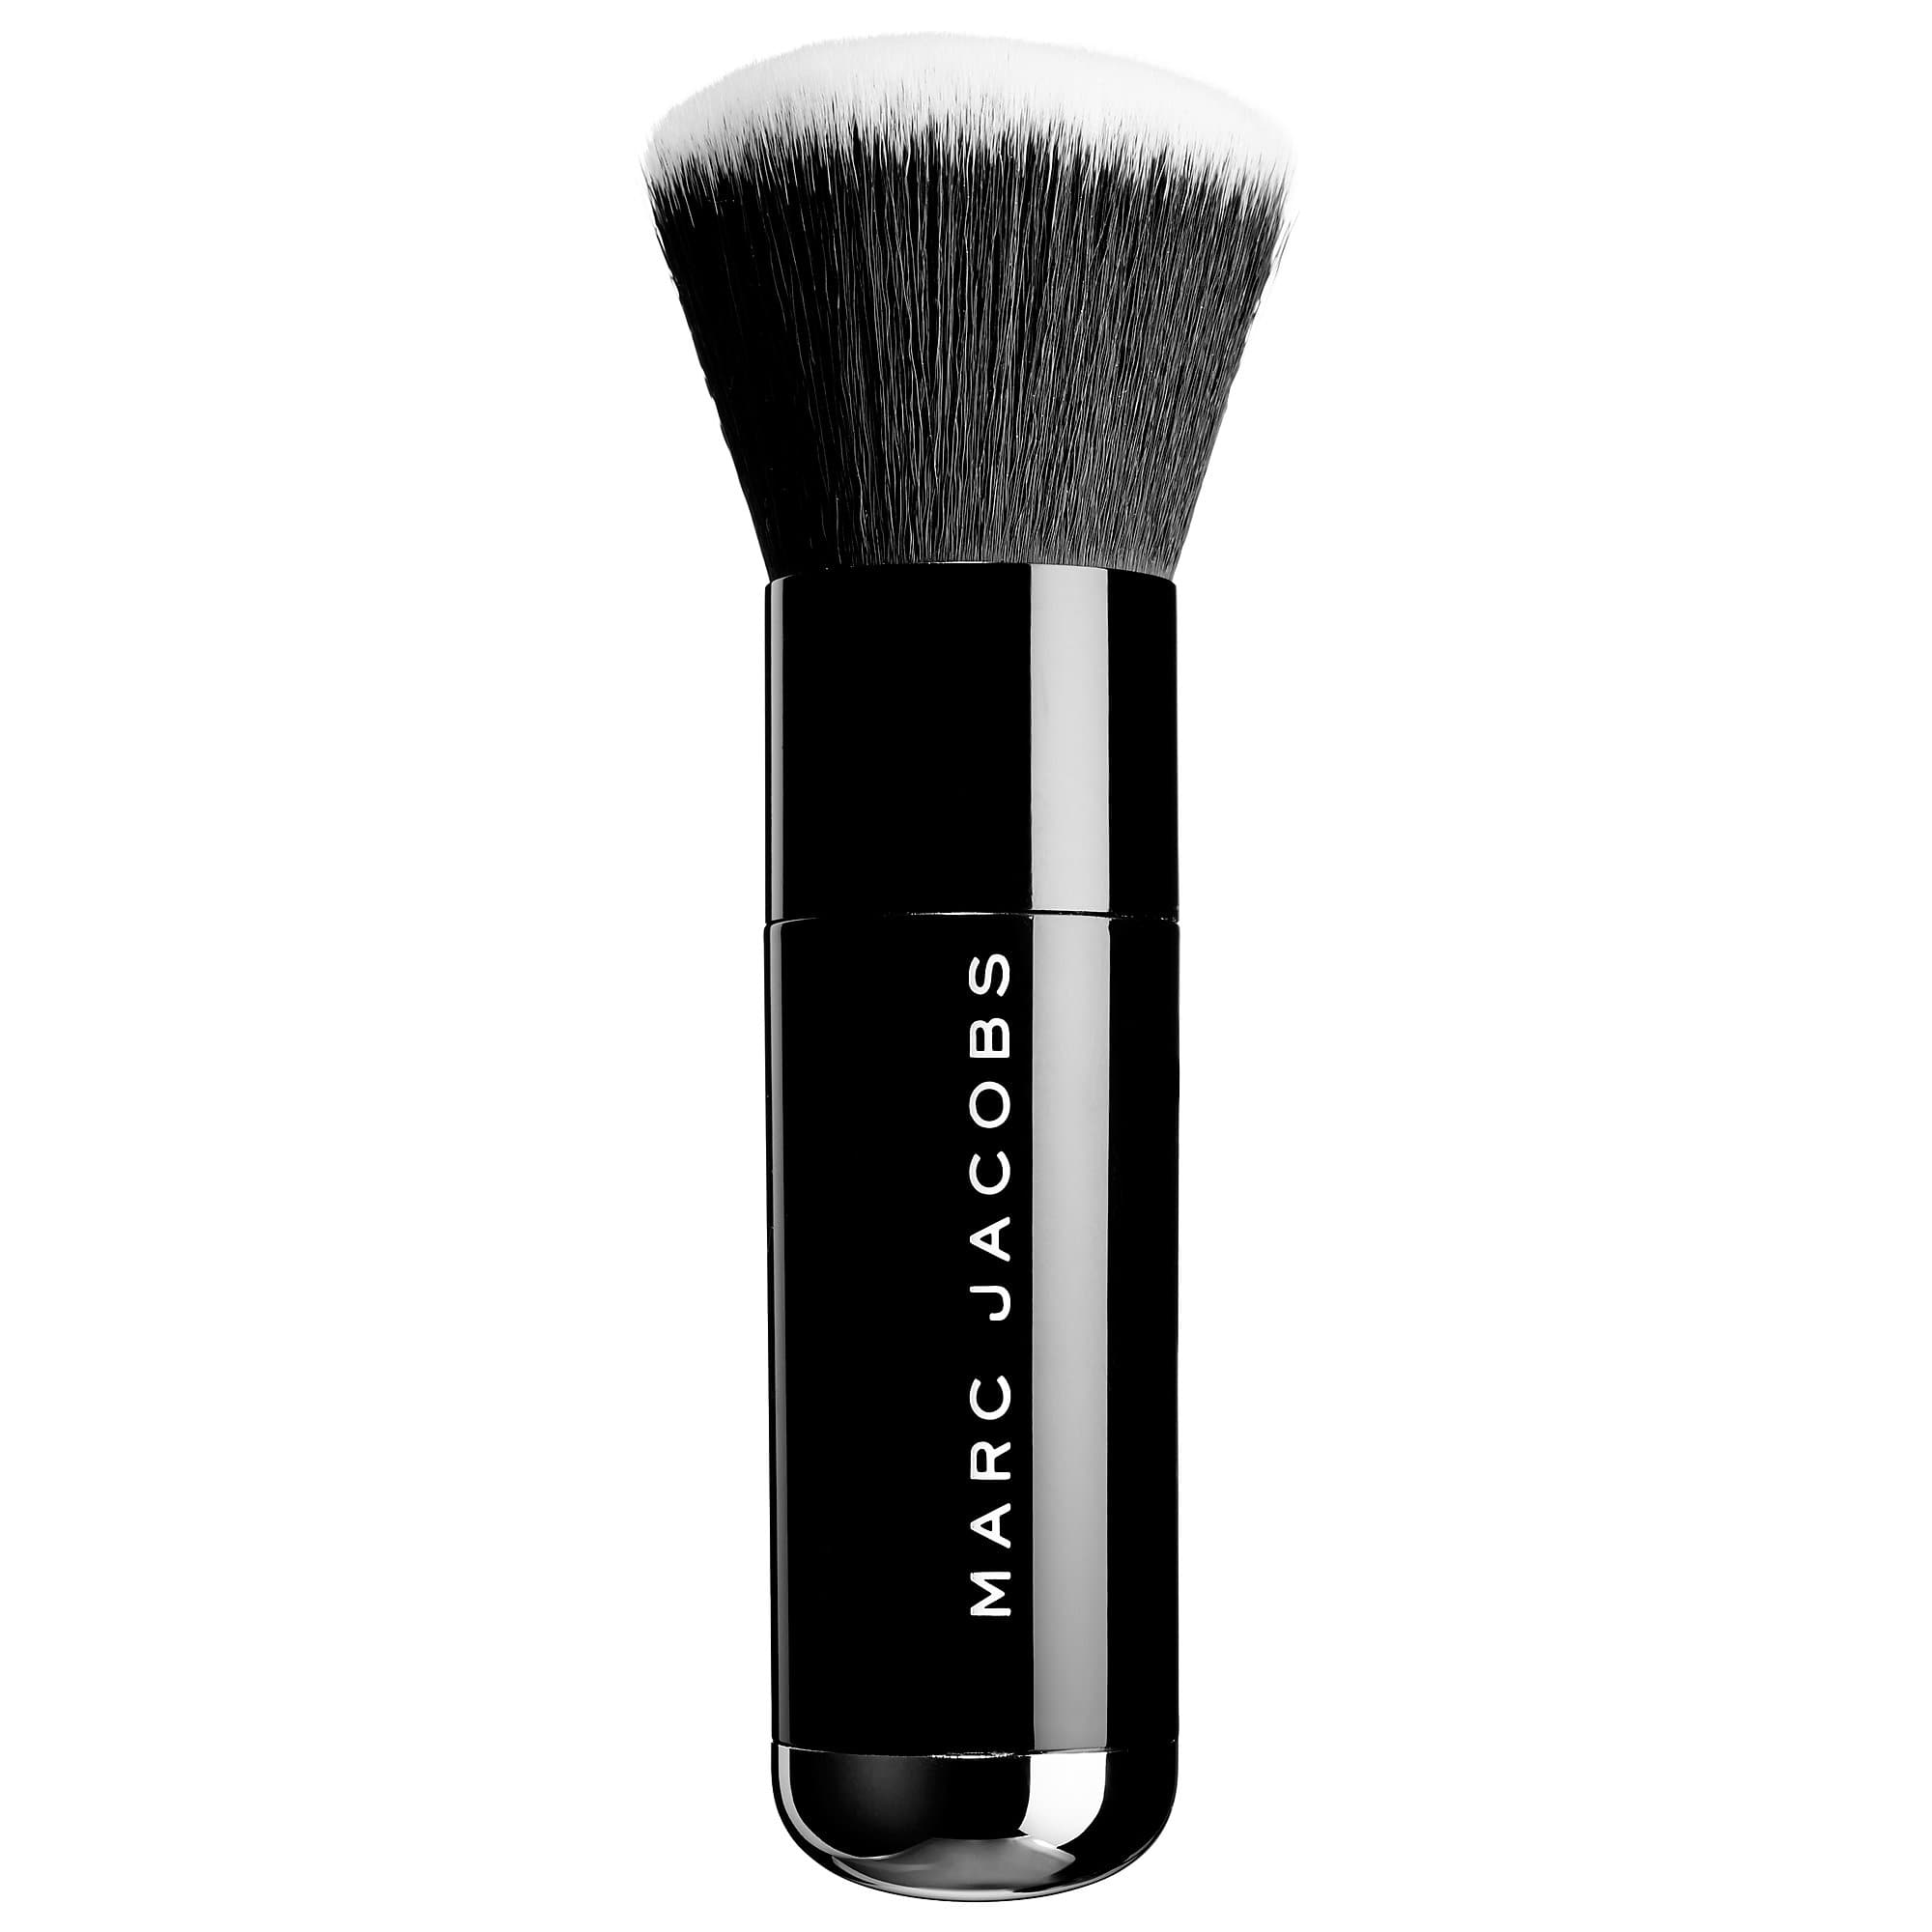 The Face III Buffing Foundation Brush